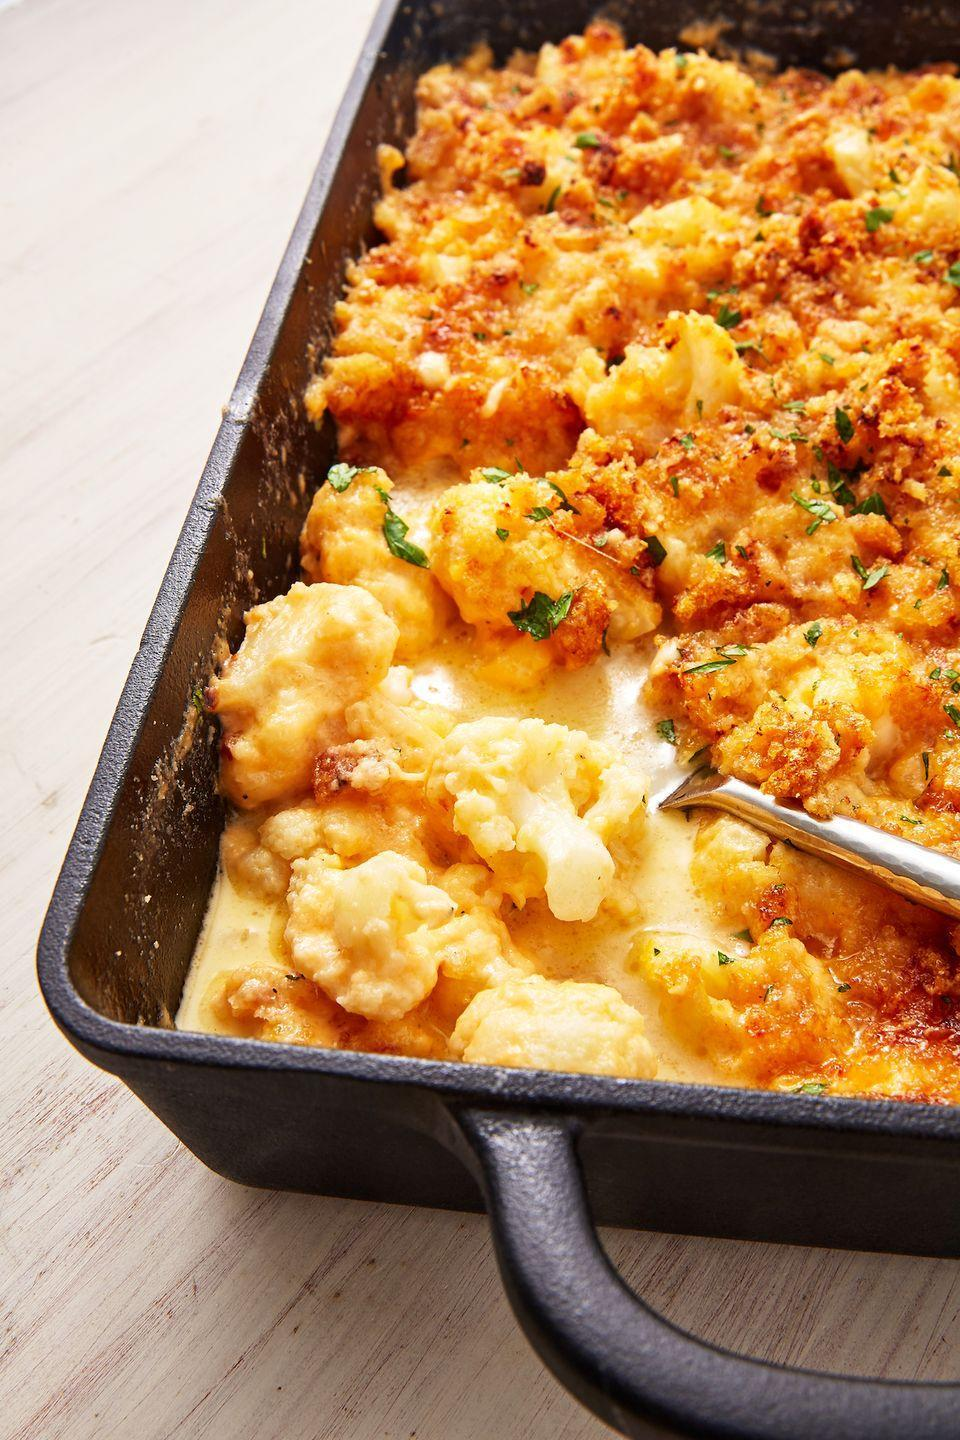 """<p>All the goodness of mac & cheese, without the guilt.</p><p>Get the recipe from <a href=""""https://www.delish.com/cooking/nutrition/a29024668/keto-mac-and-cheese-recipe/"""" rel=""""nofollow noopener"""" target=""""_blank"""" data-ylk=""""slk:Delish"""" class=""""link rapid-noclick-resp"""">Delish</a>.</p>"""